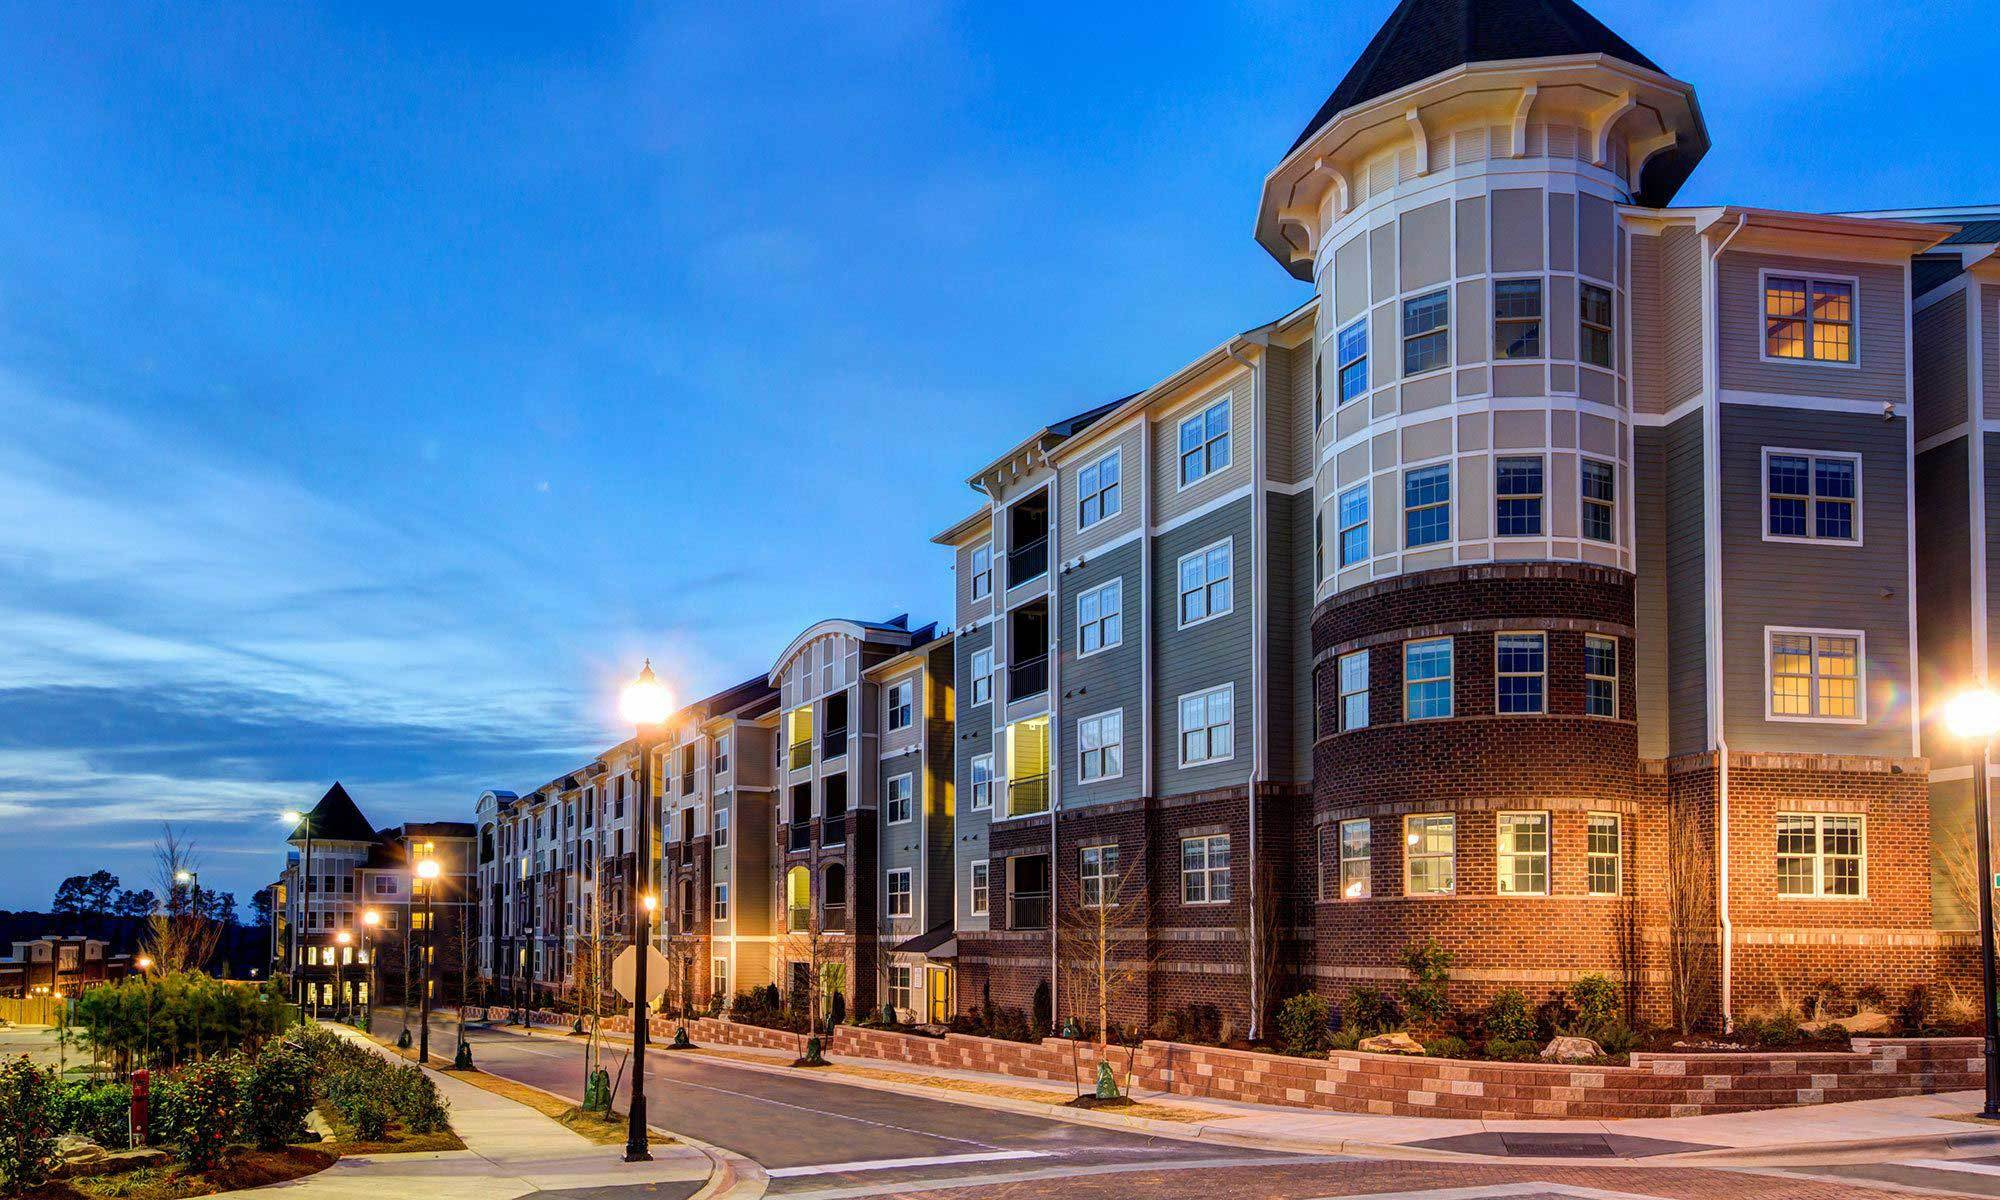 1 Bedroom Apartments In Durham Nc Morrisville Nc Apartments Amp Townhomes The Marq At Weston